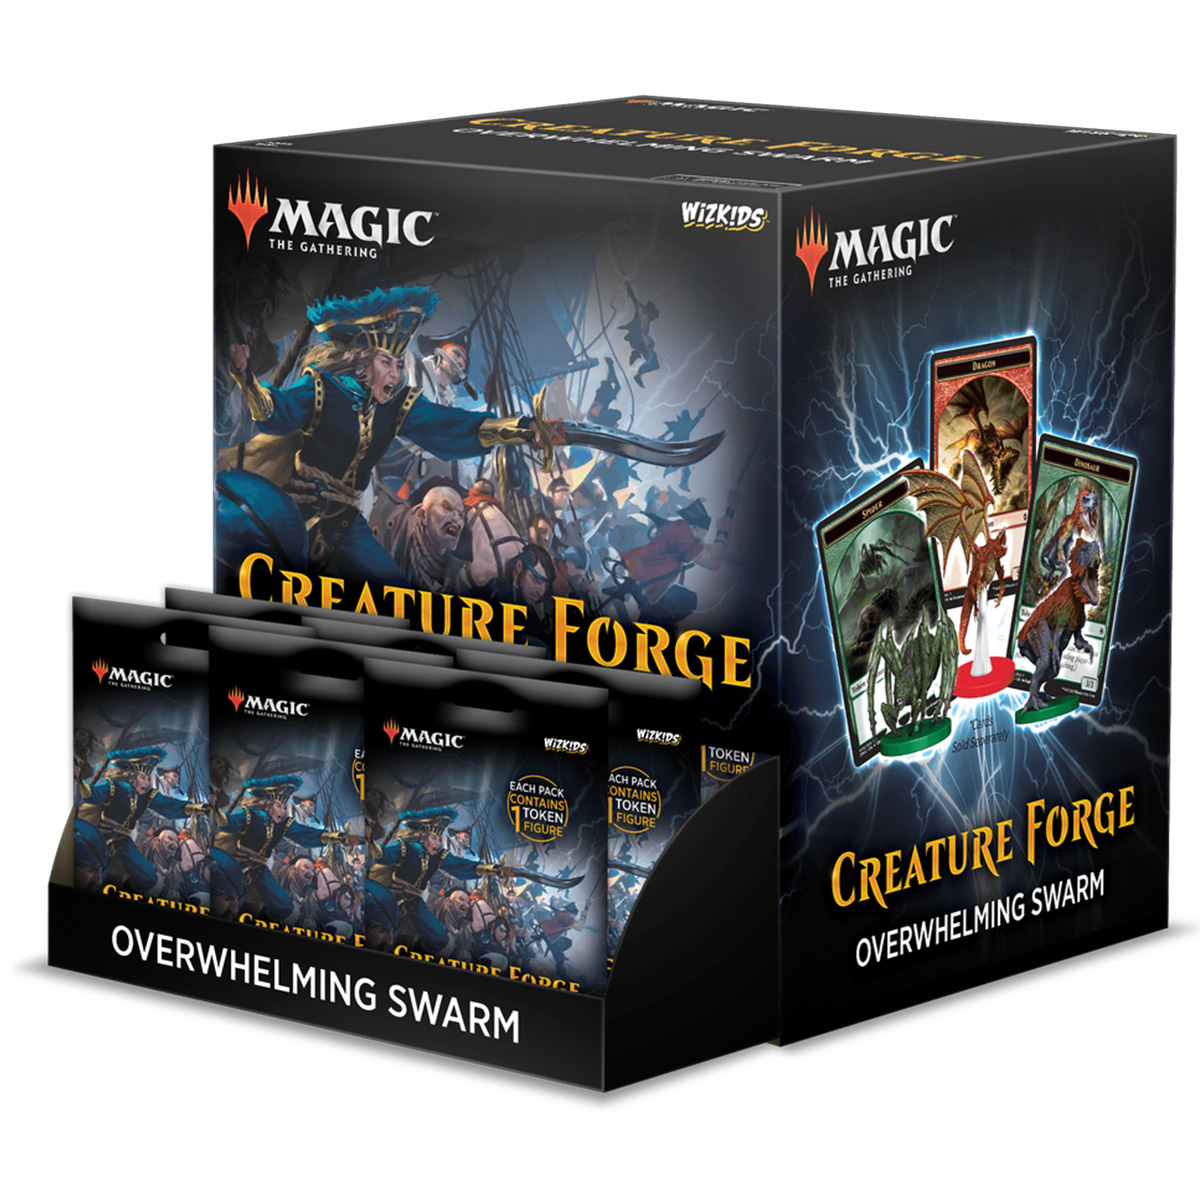 Magic: The Gathering -Creature Forge Overwhelming Swarm Blind Bag